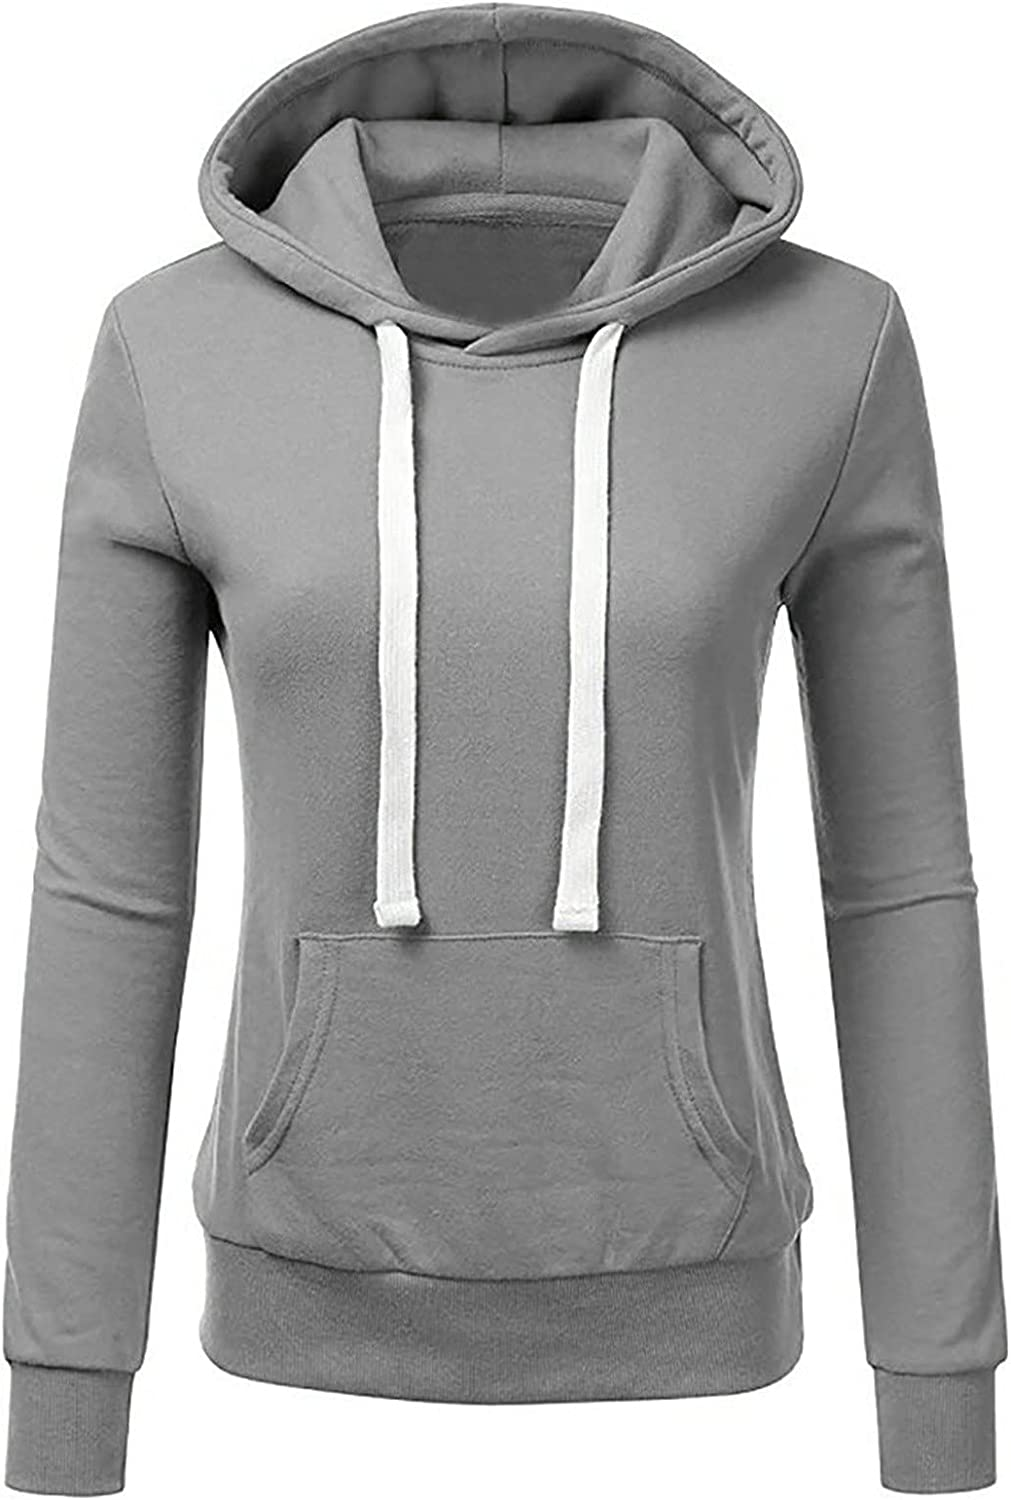 Pullover for Women Hoodies Drawstring Hooded Pockets Casual Long Sleeve V Neck Sweatshirts Solid Loose Plus Size Top